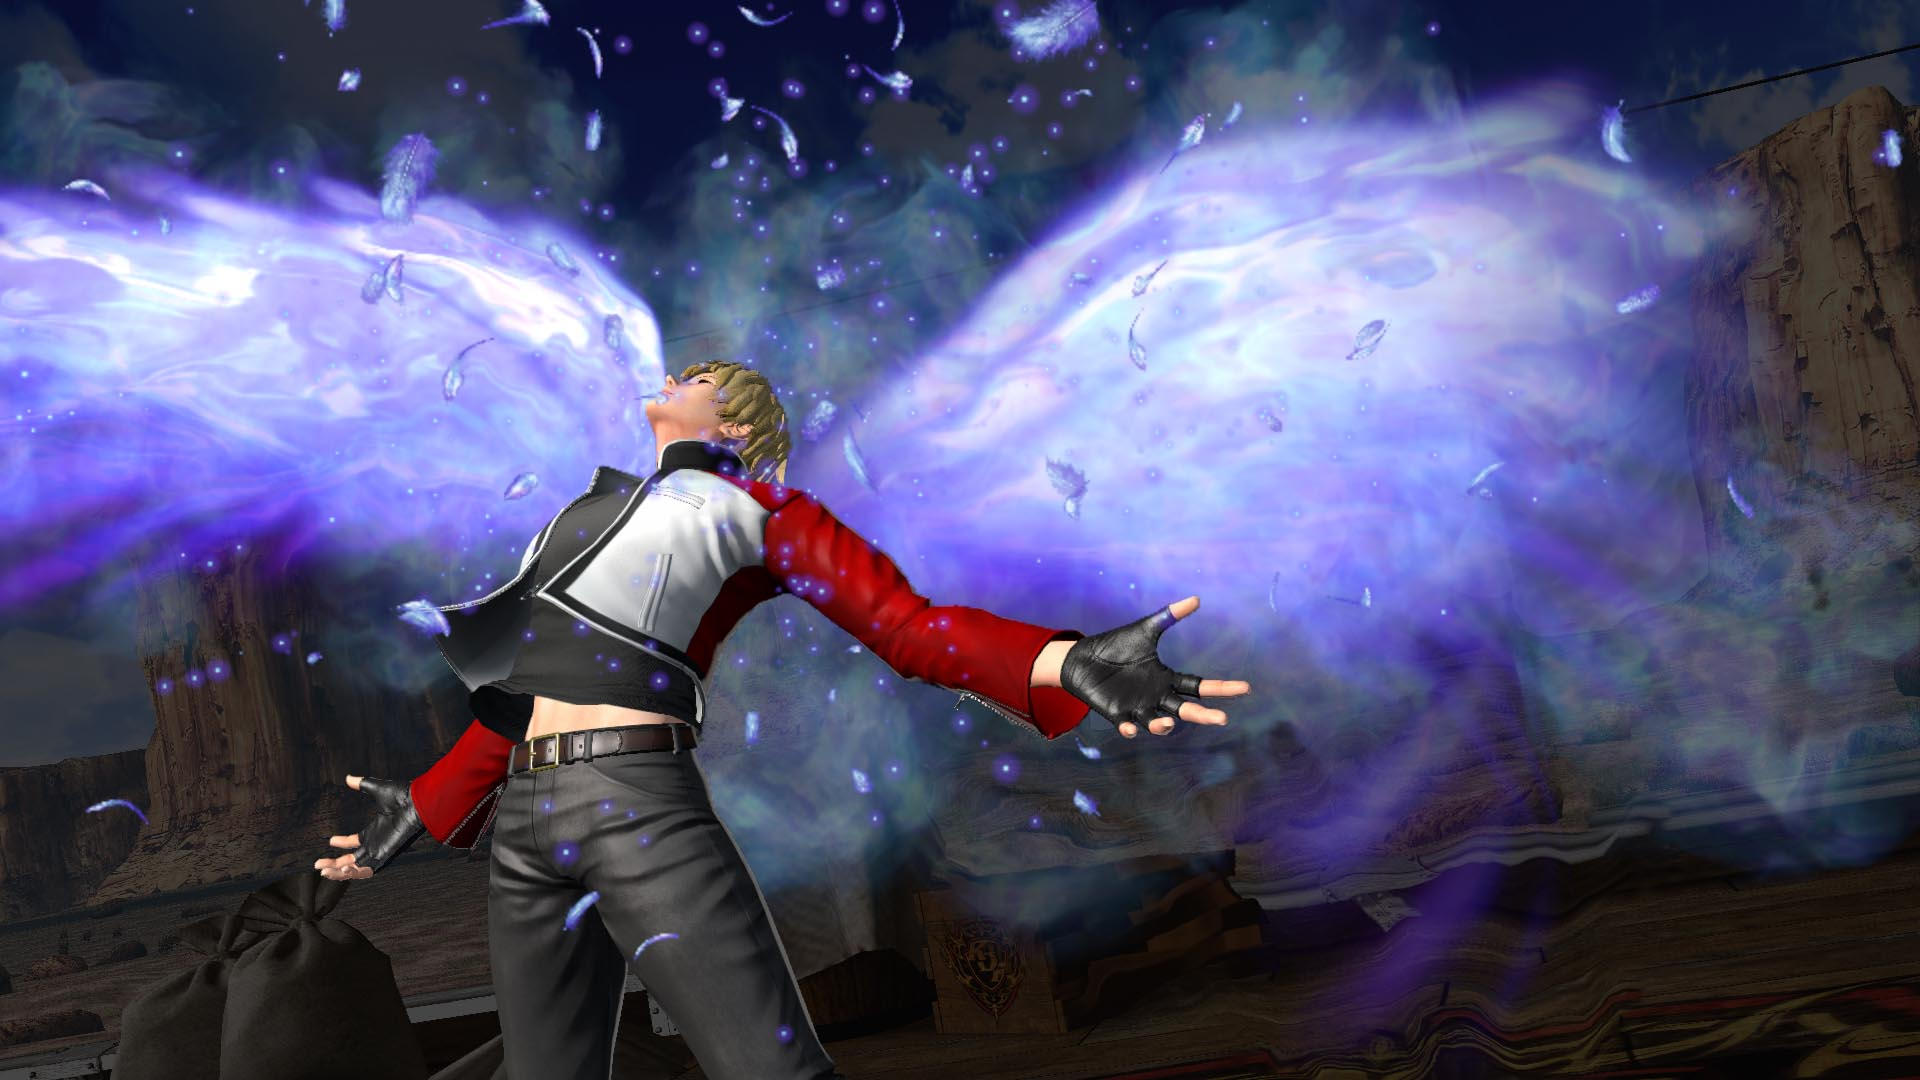 Rock Howard 02 Kof Xiv Ps4wallpapers Com Anime pictures and wallpapers with a unique search for free. rock howard 02 kof xiv